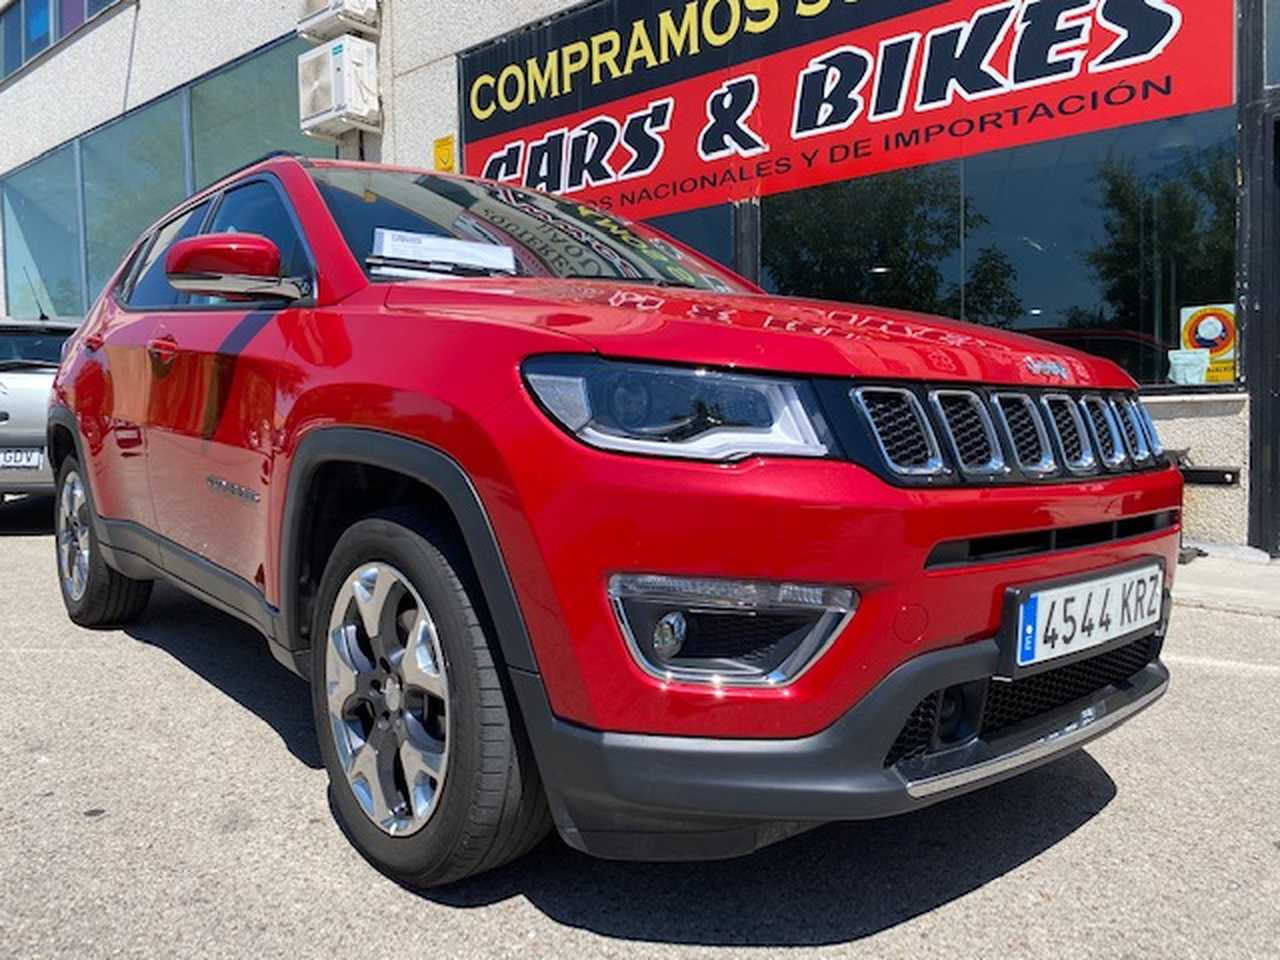 Jeep Compass 1.4 Mair 103kW Limited 4x2 5p.   - Foto 1